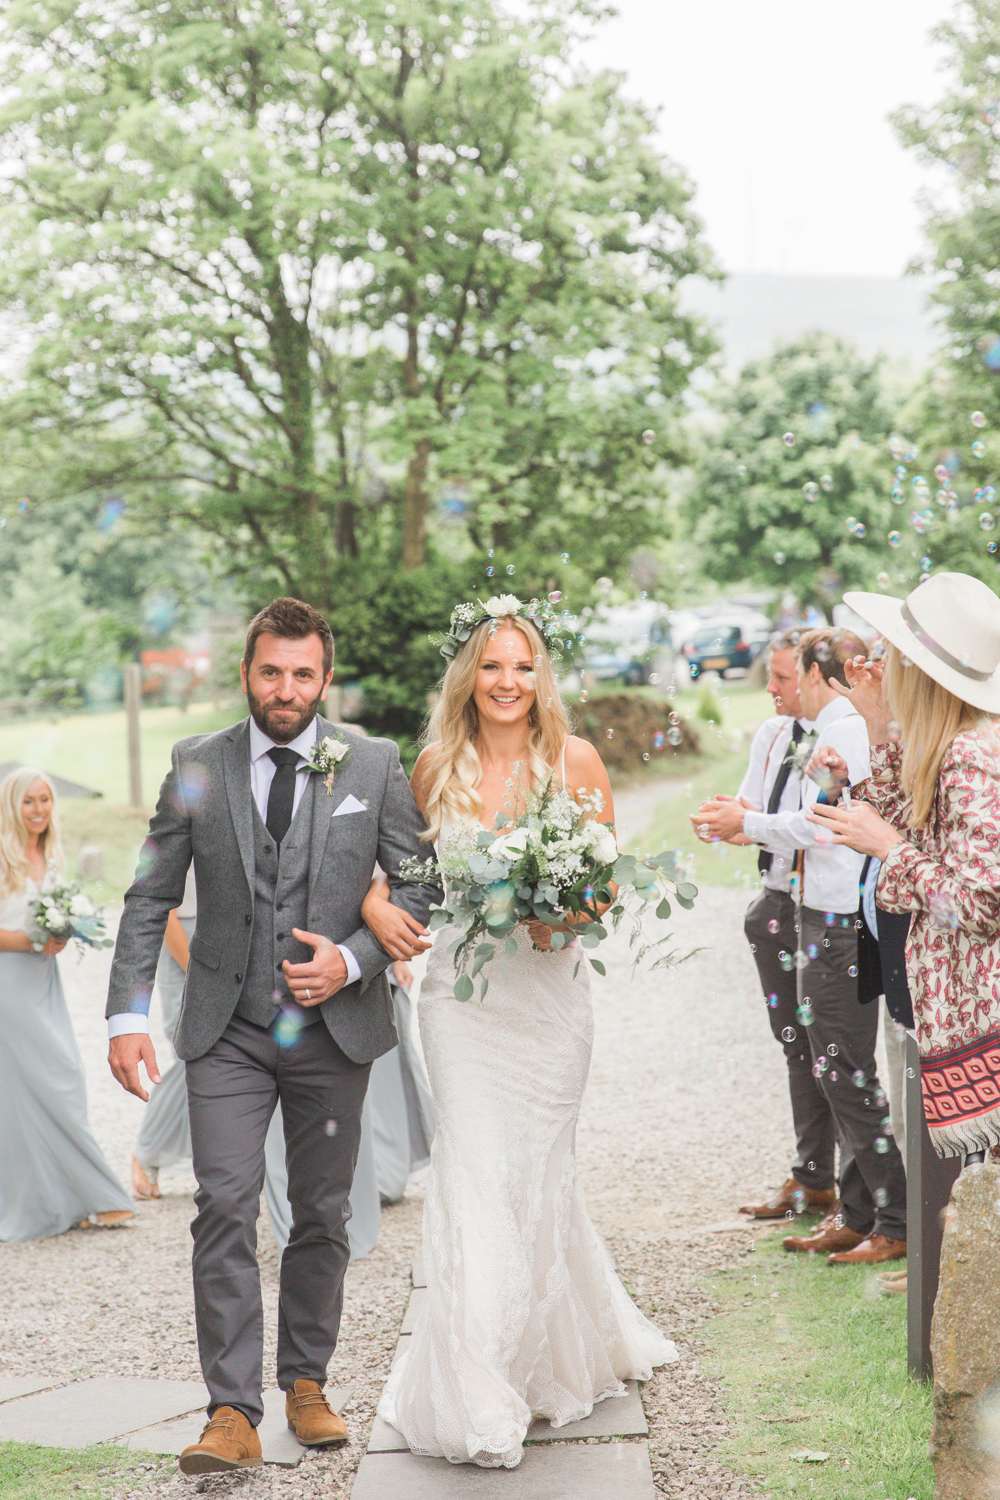 This is a picture of the bride and groom walking towards the Green Room after the cermeonyarbour. The bride is on the right. She is  wearing a white, fitted, sleeveless dress with shoestring straps. She has blond hair that she is wearing loose. She is wearing  a flower garland and a veil. The groom is wearing a light grey suit. You can see guests standing beside them. They are linking arms and walking towards the camera. the shot is from the knees up. There are trees and stone barns in the background.